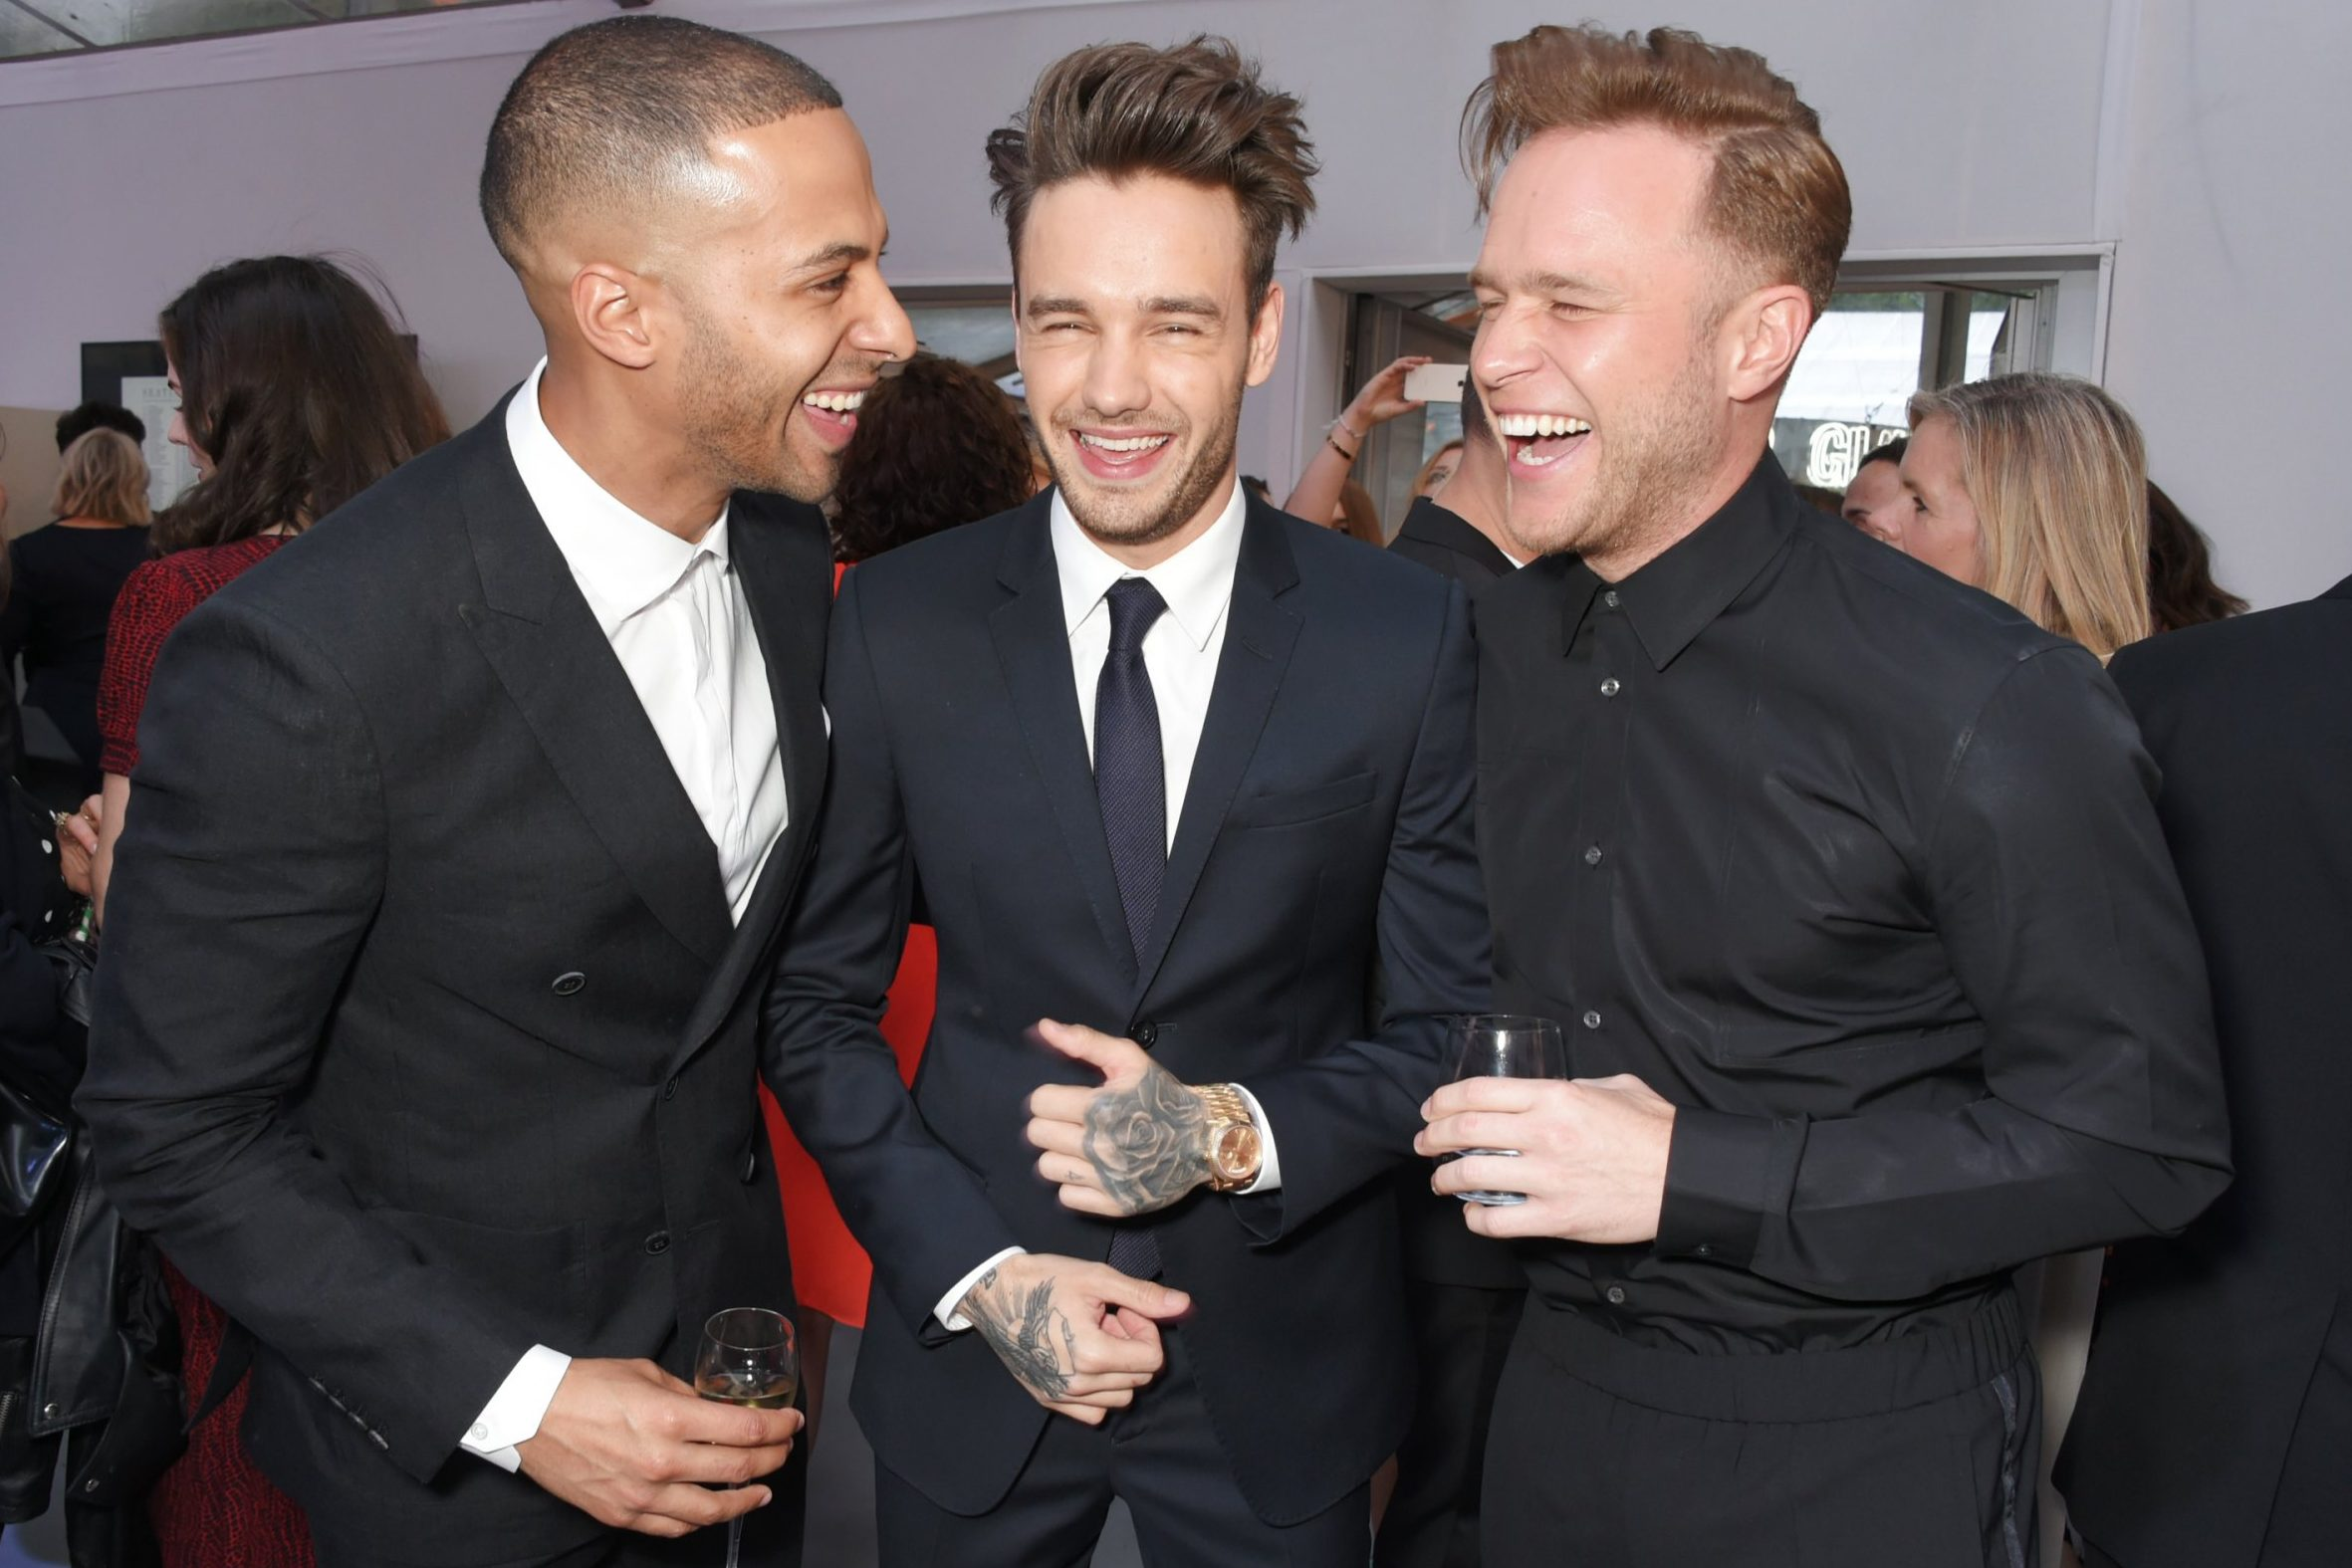 Liam Payne hanging out with Olly Murs and Marvin Humes at the Glamour Awards is giving us X Factor feels